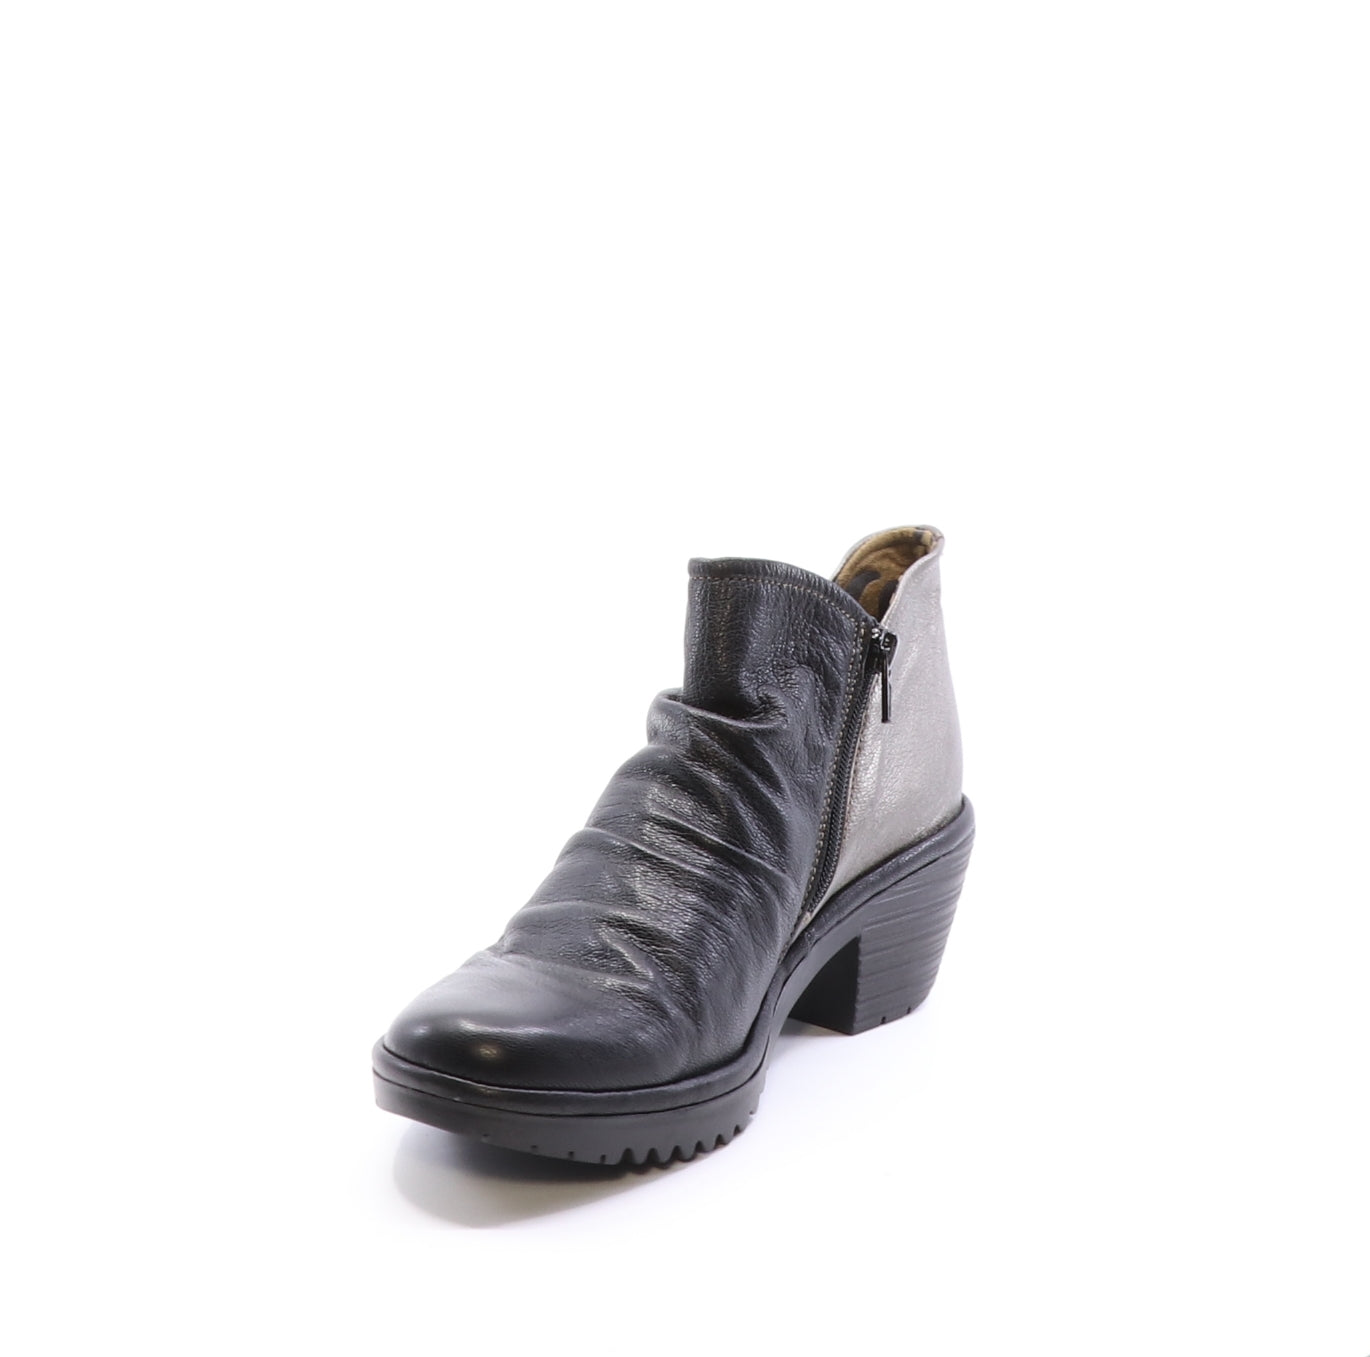 Fly London Wezo in black bronze boot available at Shoe Muse